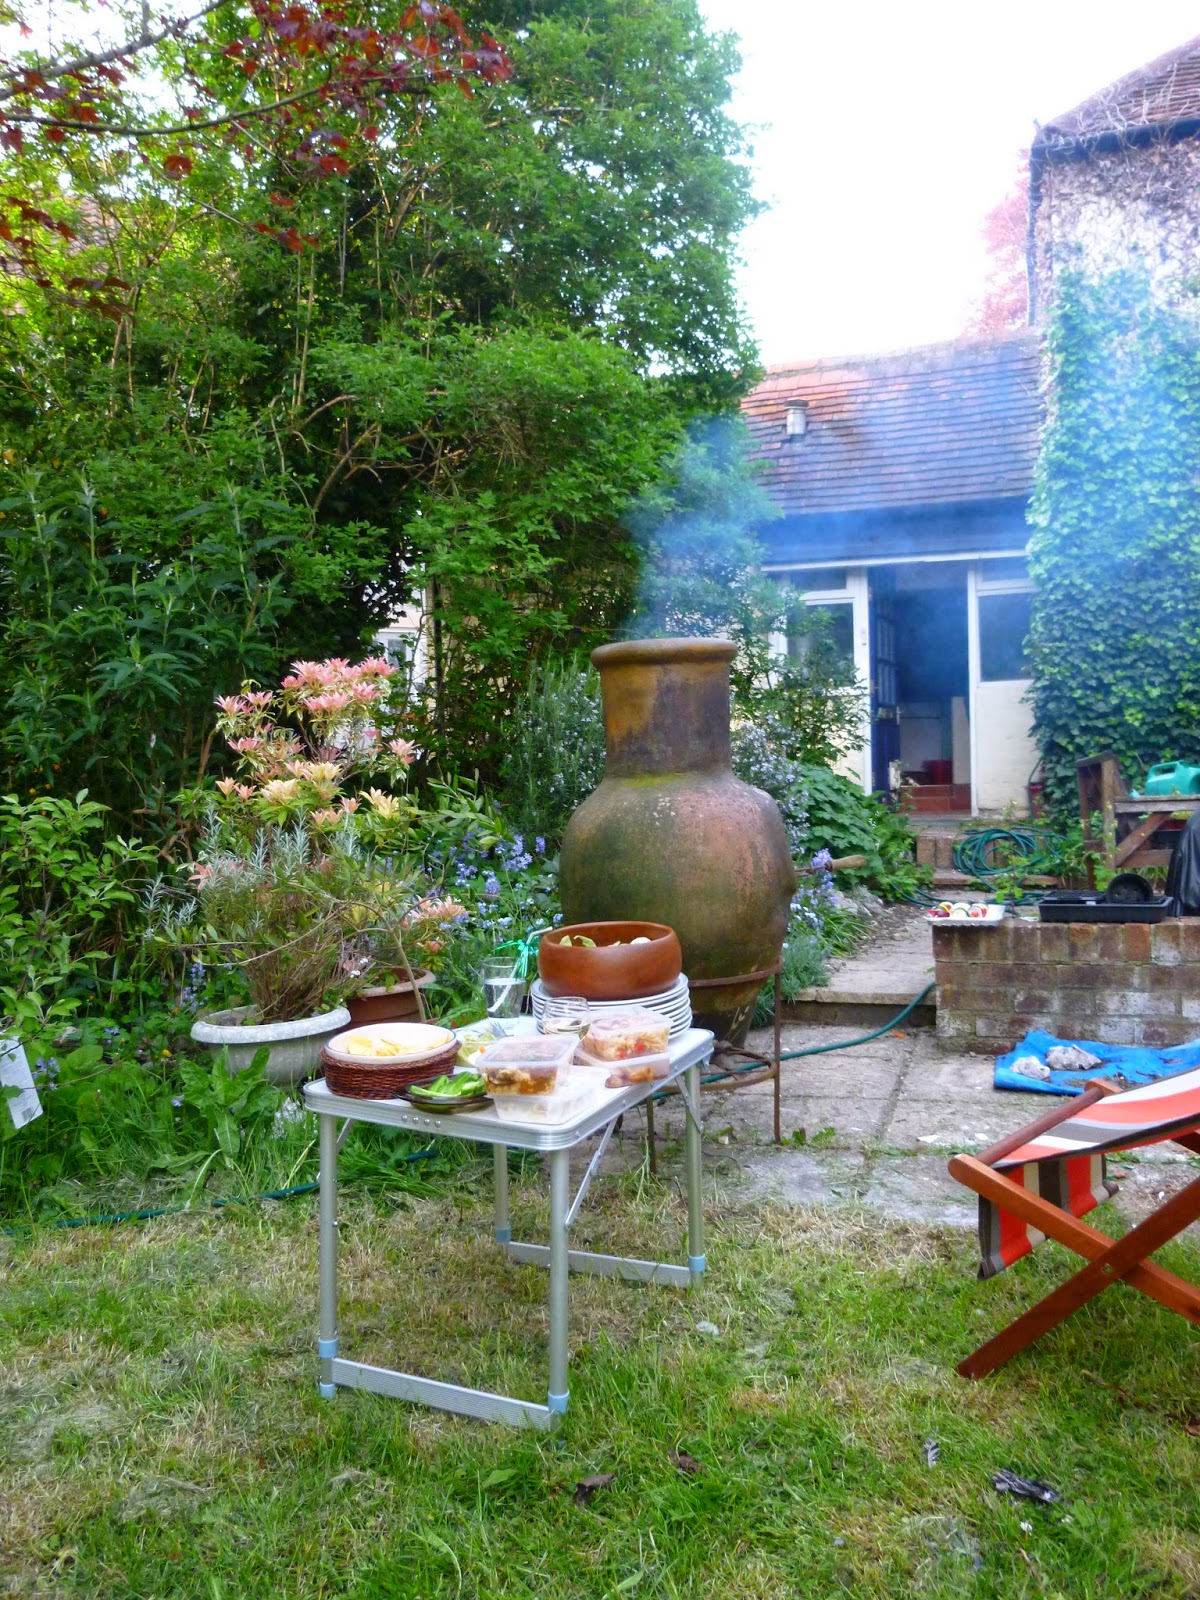 A Rural Birthday: Barbecue, Mojito and Cake